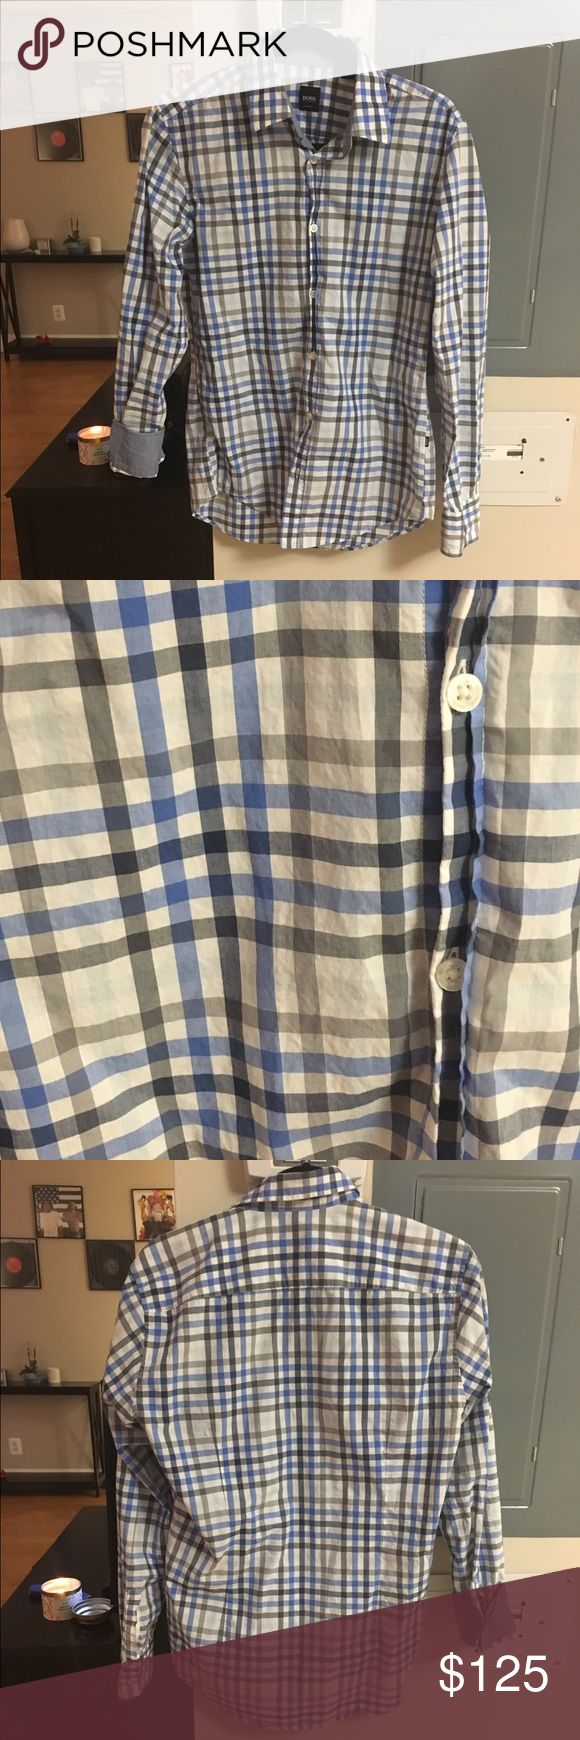 ✨FLASH SALE✨ Hugo Boss Men's Slim Fit Button Down Grey and Blue plaid button down shirt. Worn once! Hugo Boss Shirts Dress Shirts